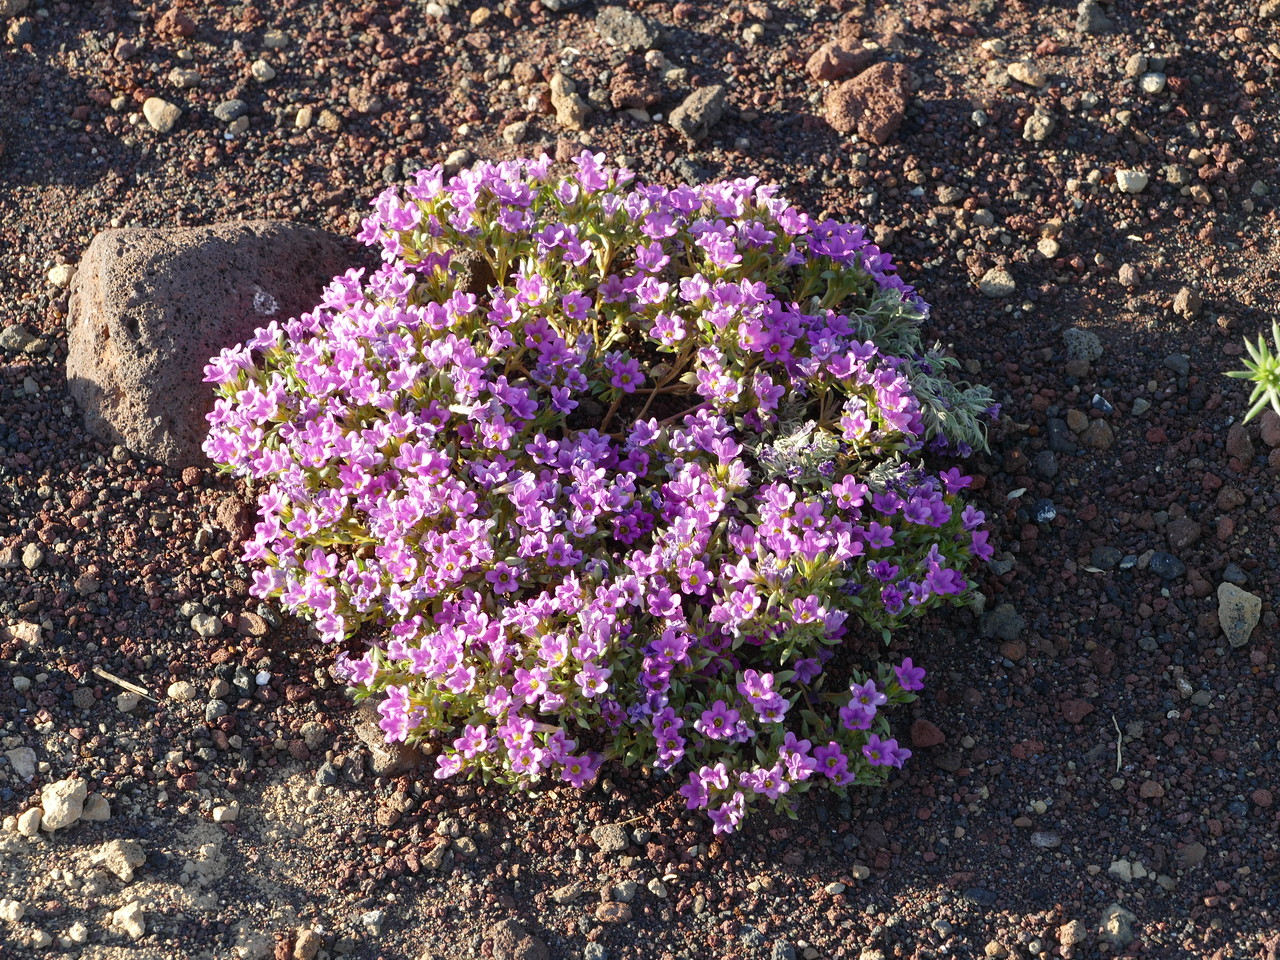 There were  2-4 foot wide clumps of these purple flowers growing on the red gravel.  I think it is in the Nama genus like purple mat but I don't know what species.